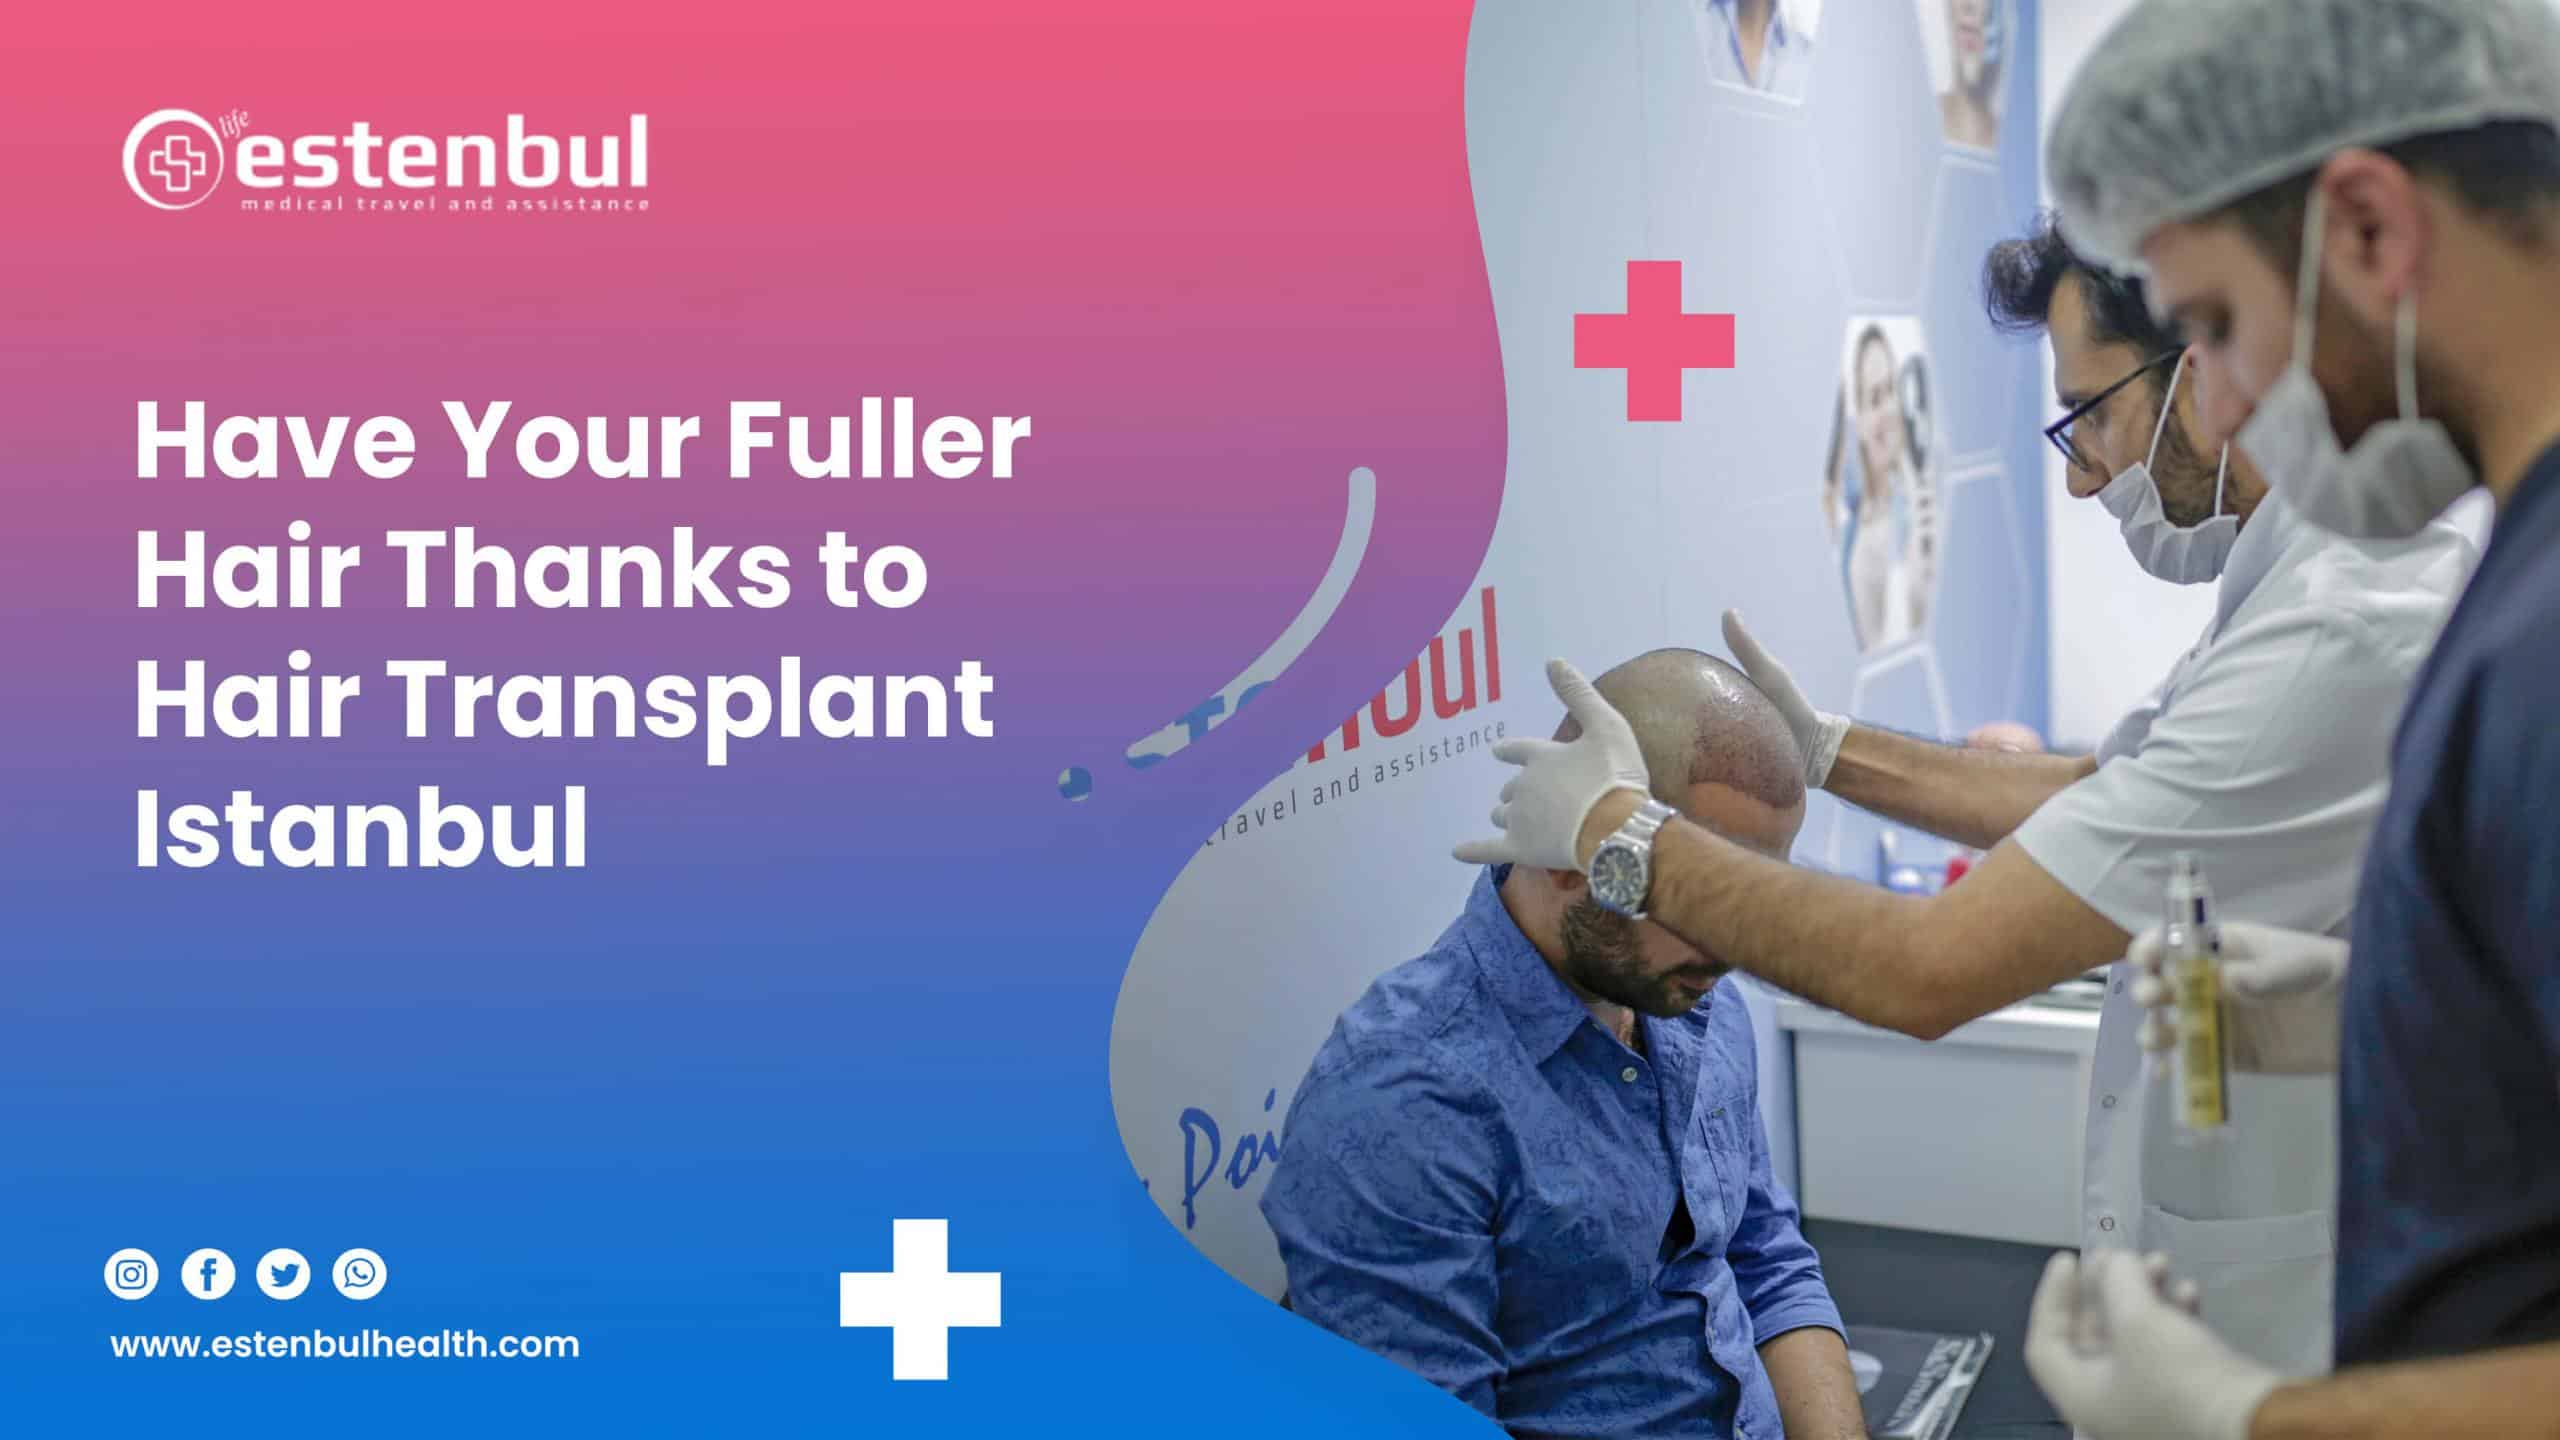 have your fuller hair thanks to hair transplant istanbul